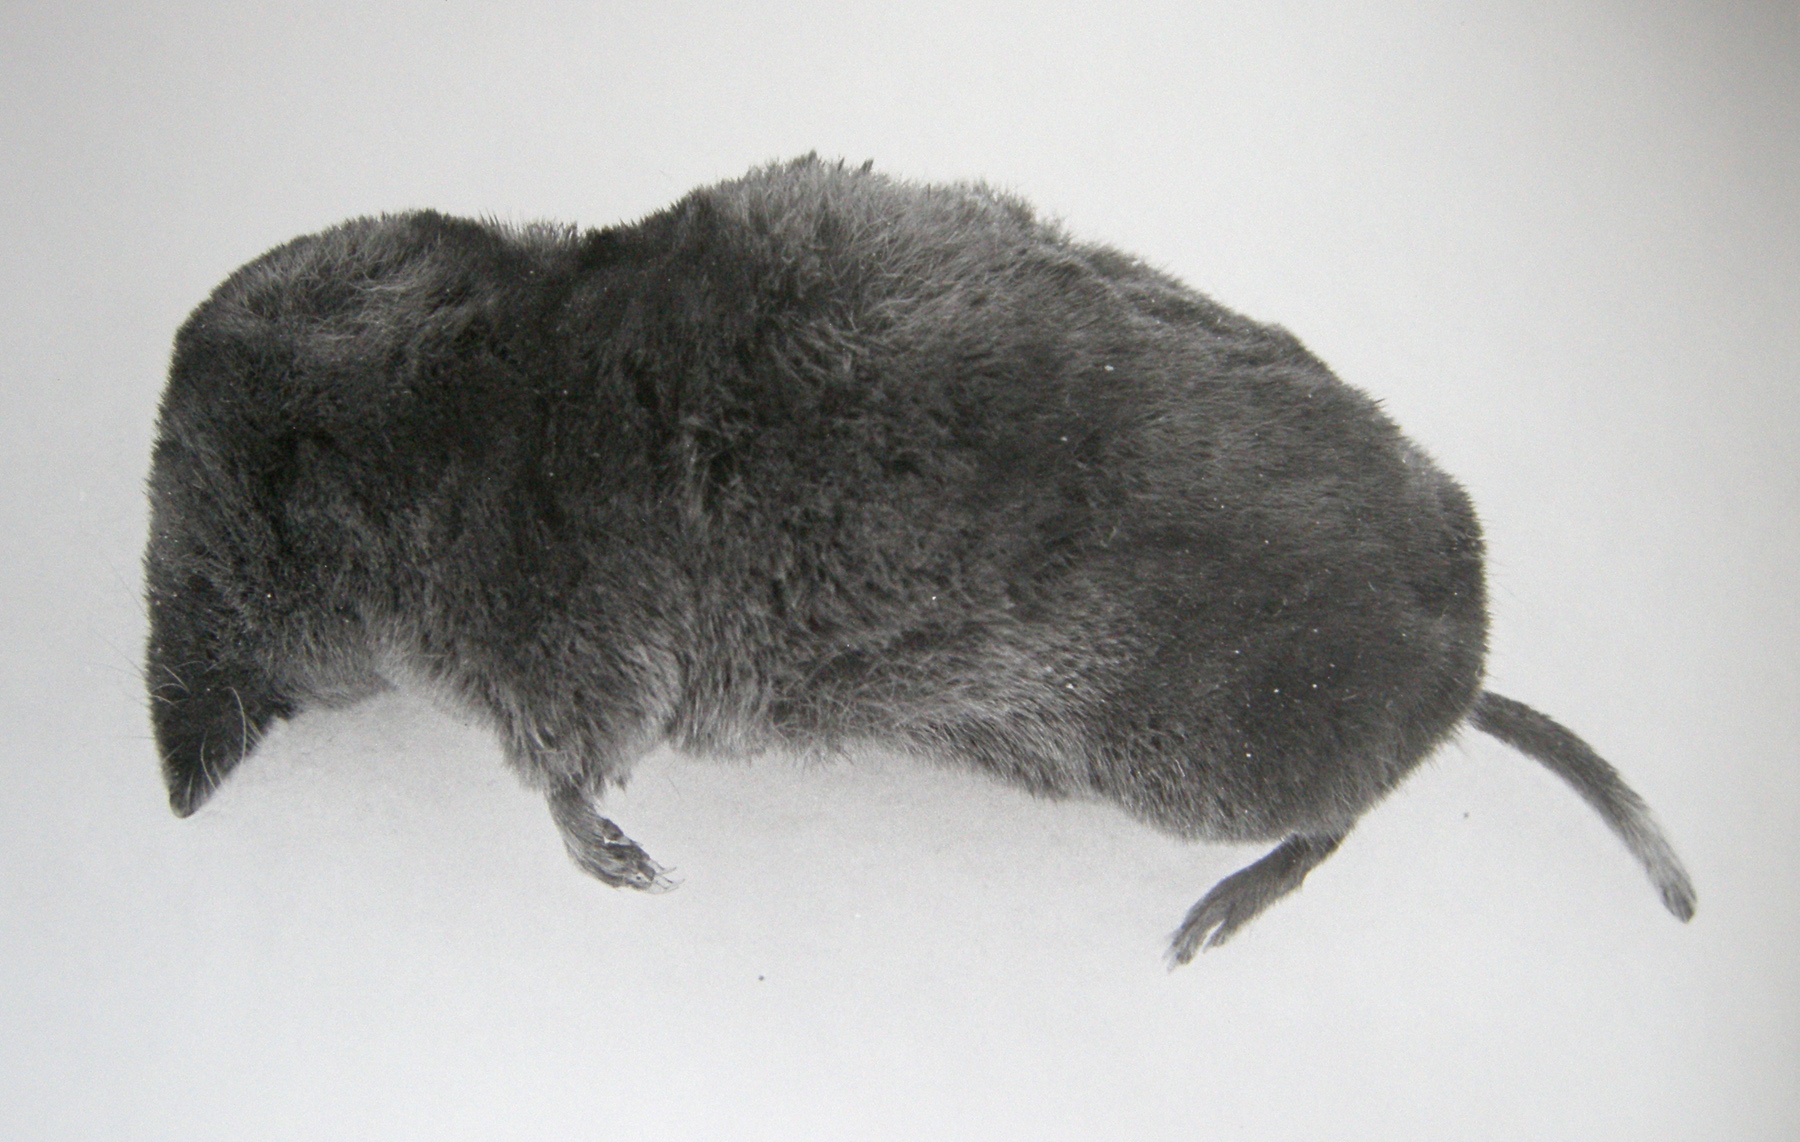 This Dead Short Tailed Shrew Has A Pointed Snout Furry Tail And Very Tiny Ears